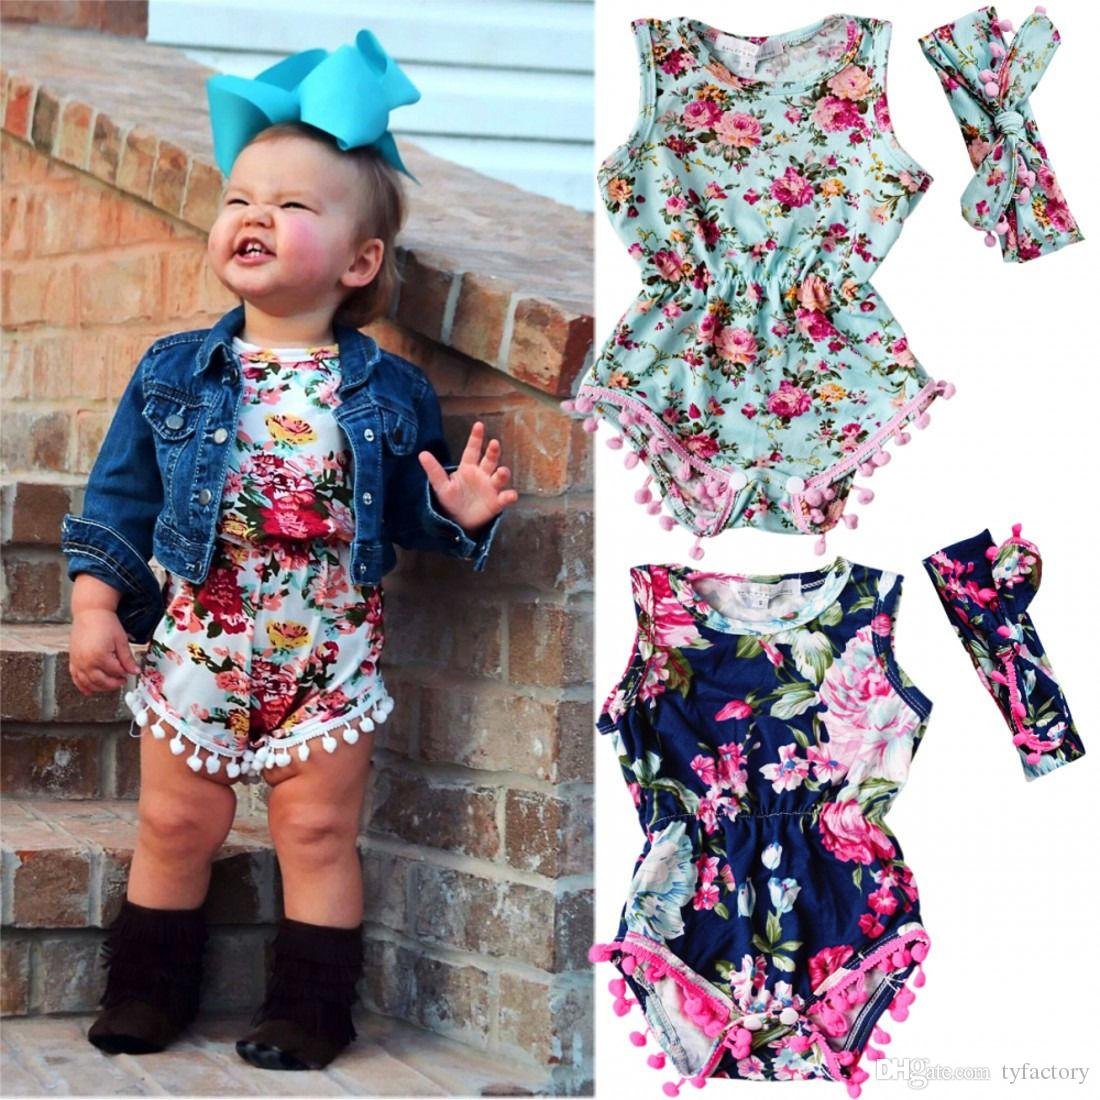 97879368416ff 2019 Cute Baby Floral Romper +Headband Children One Pieces Little Baby  Clothes Babys Clothing 2017 Hot Selling High Quality 0 24M From Tyfactory